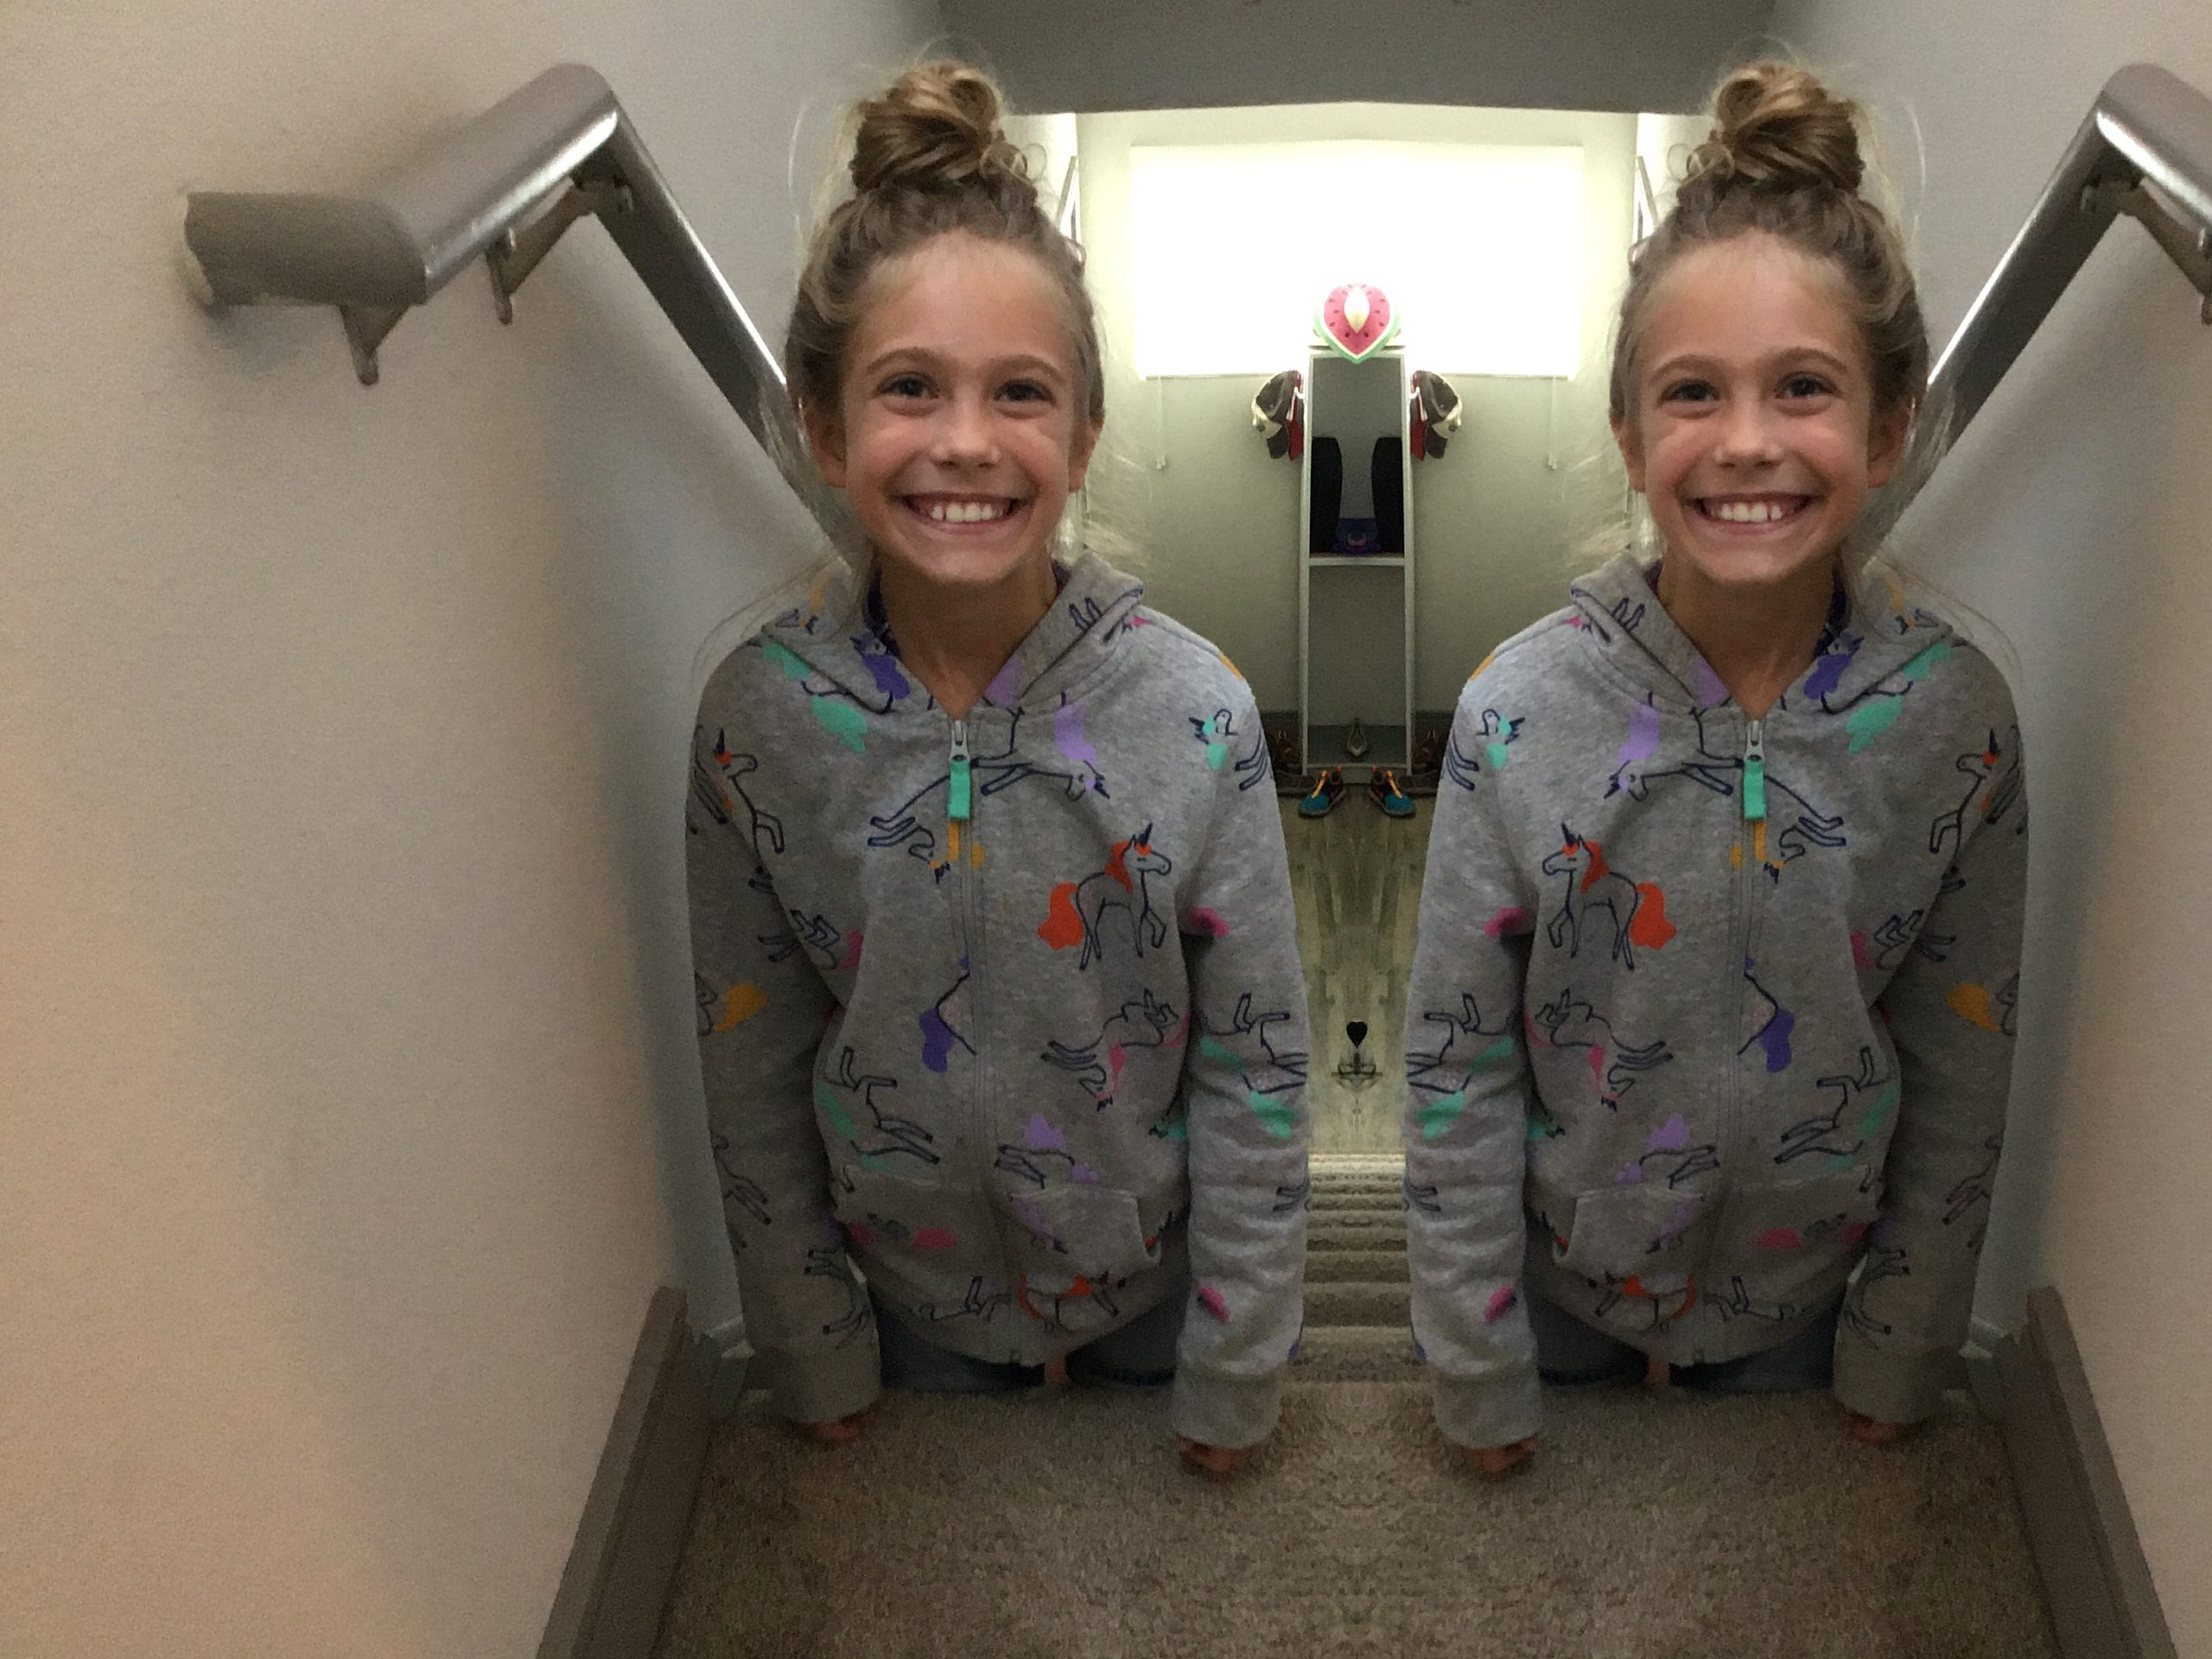 A mirror image of a little blonde girl.